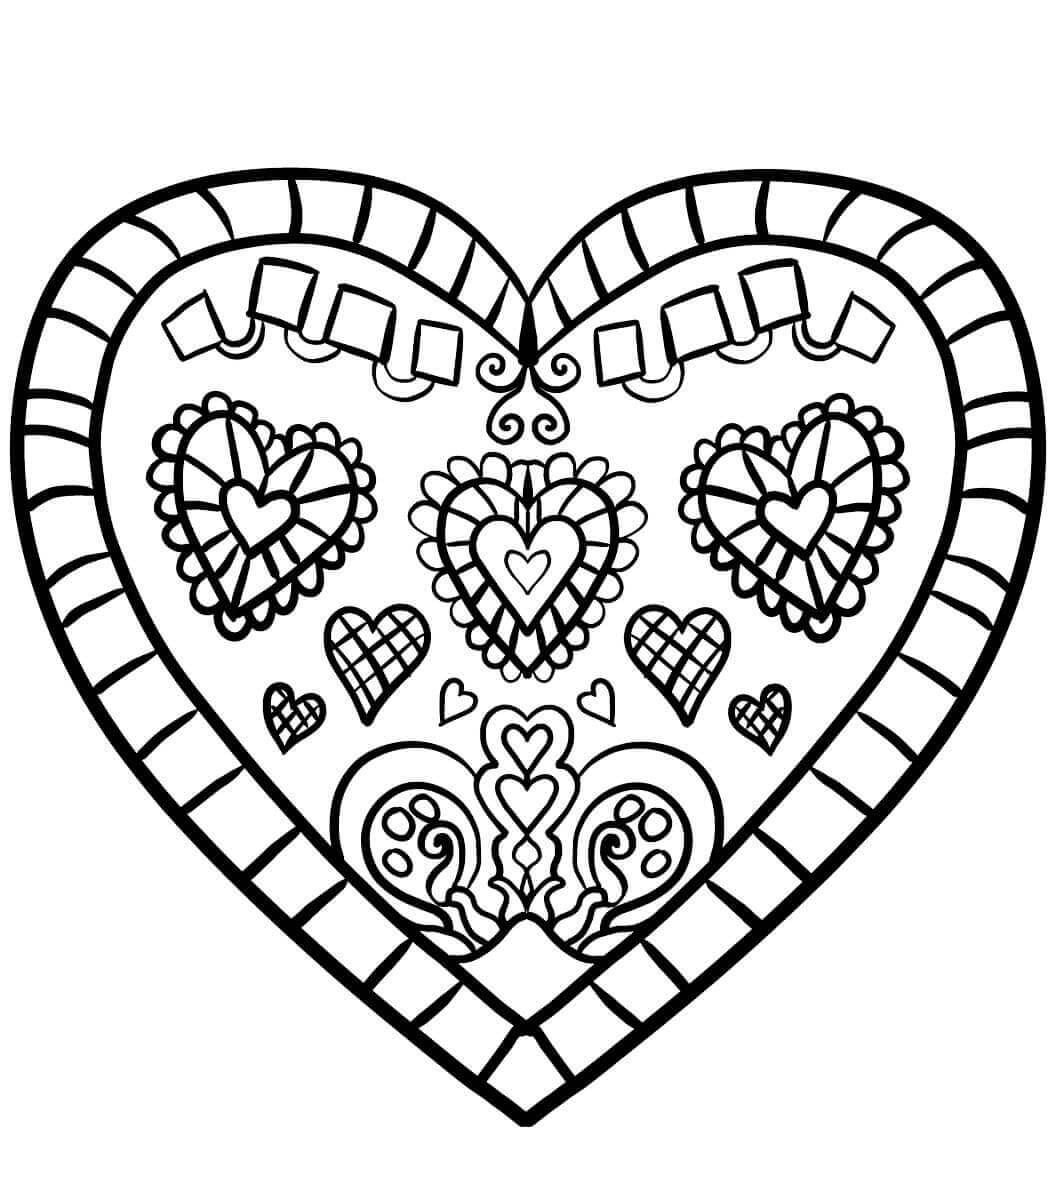 beautiful flower heart coloring pages 35 free printable heart coloring pages pages heart beautiful coloring flower